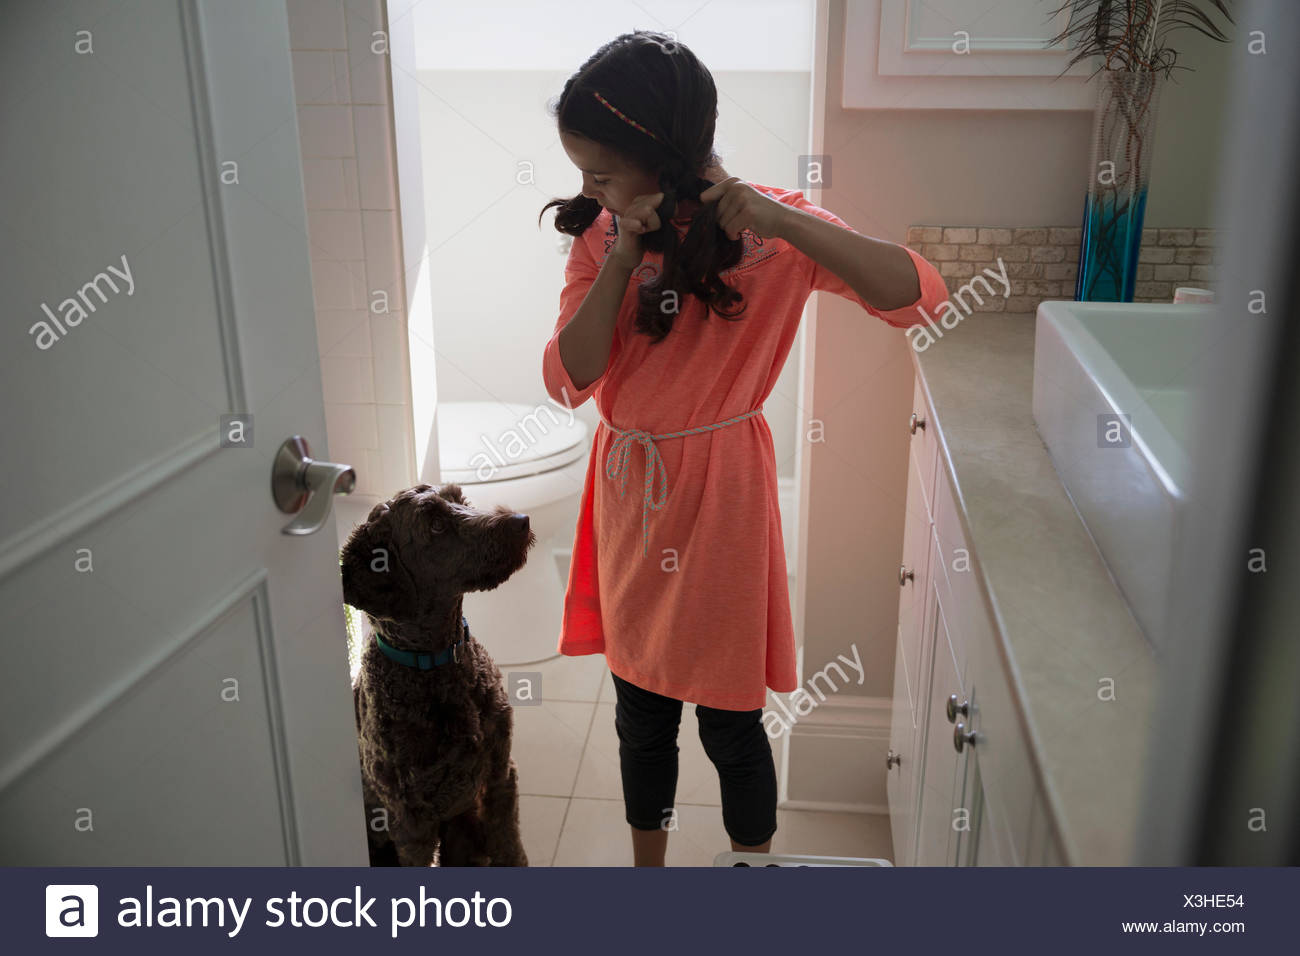 Dog watching girl fix hair in bathroom - Stock Image